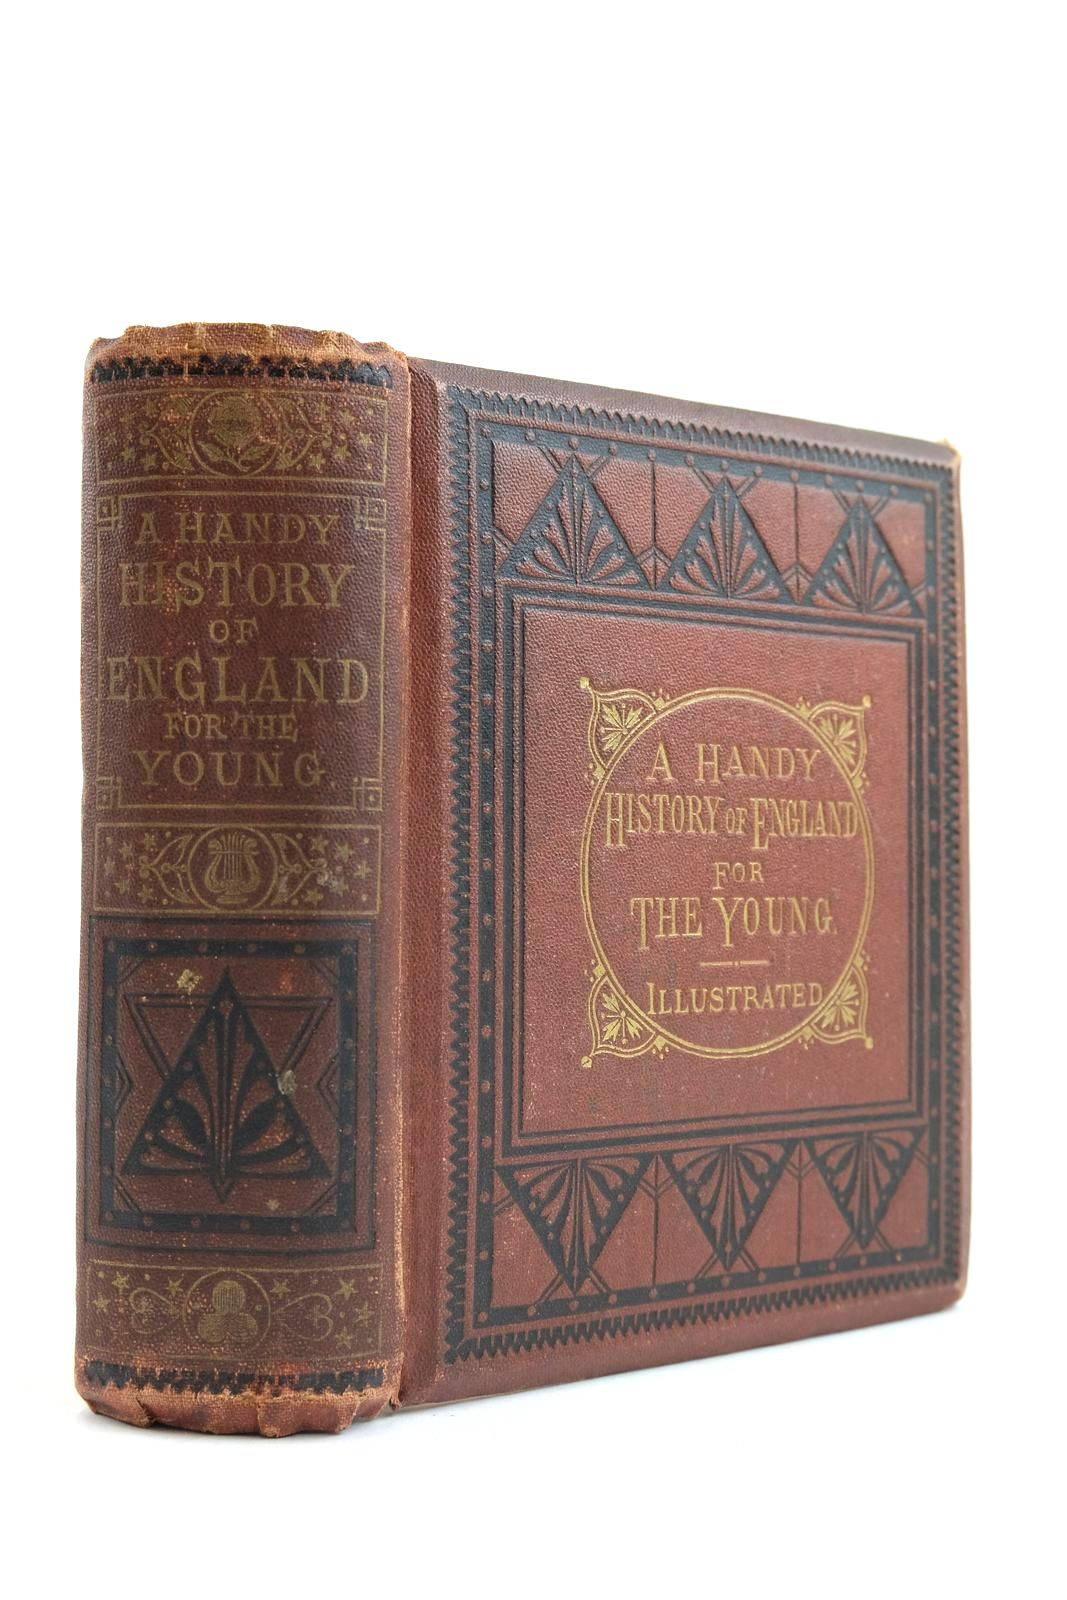 Photo of A HANDY HISTORY OF ENGLAND FOR THE YOUNG written by Dulcken, H.W. illustrated by Dalziel Brothers, published by George Routledge & Sons (STOCK CODE: 2134185)  for sale by Stella & Rose's Books